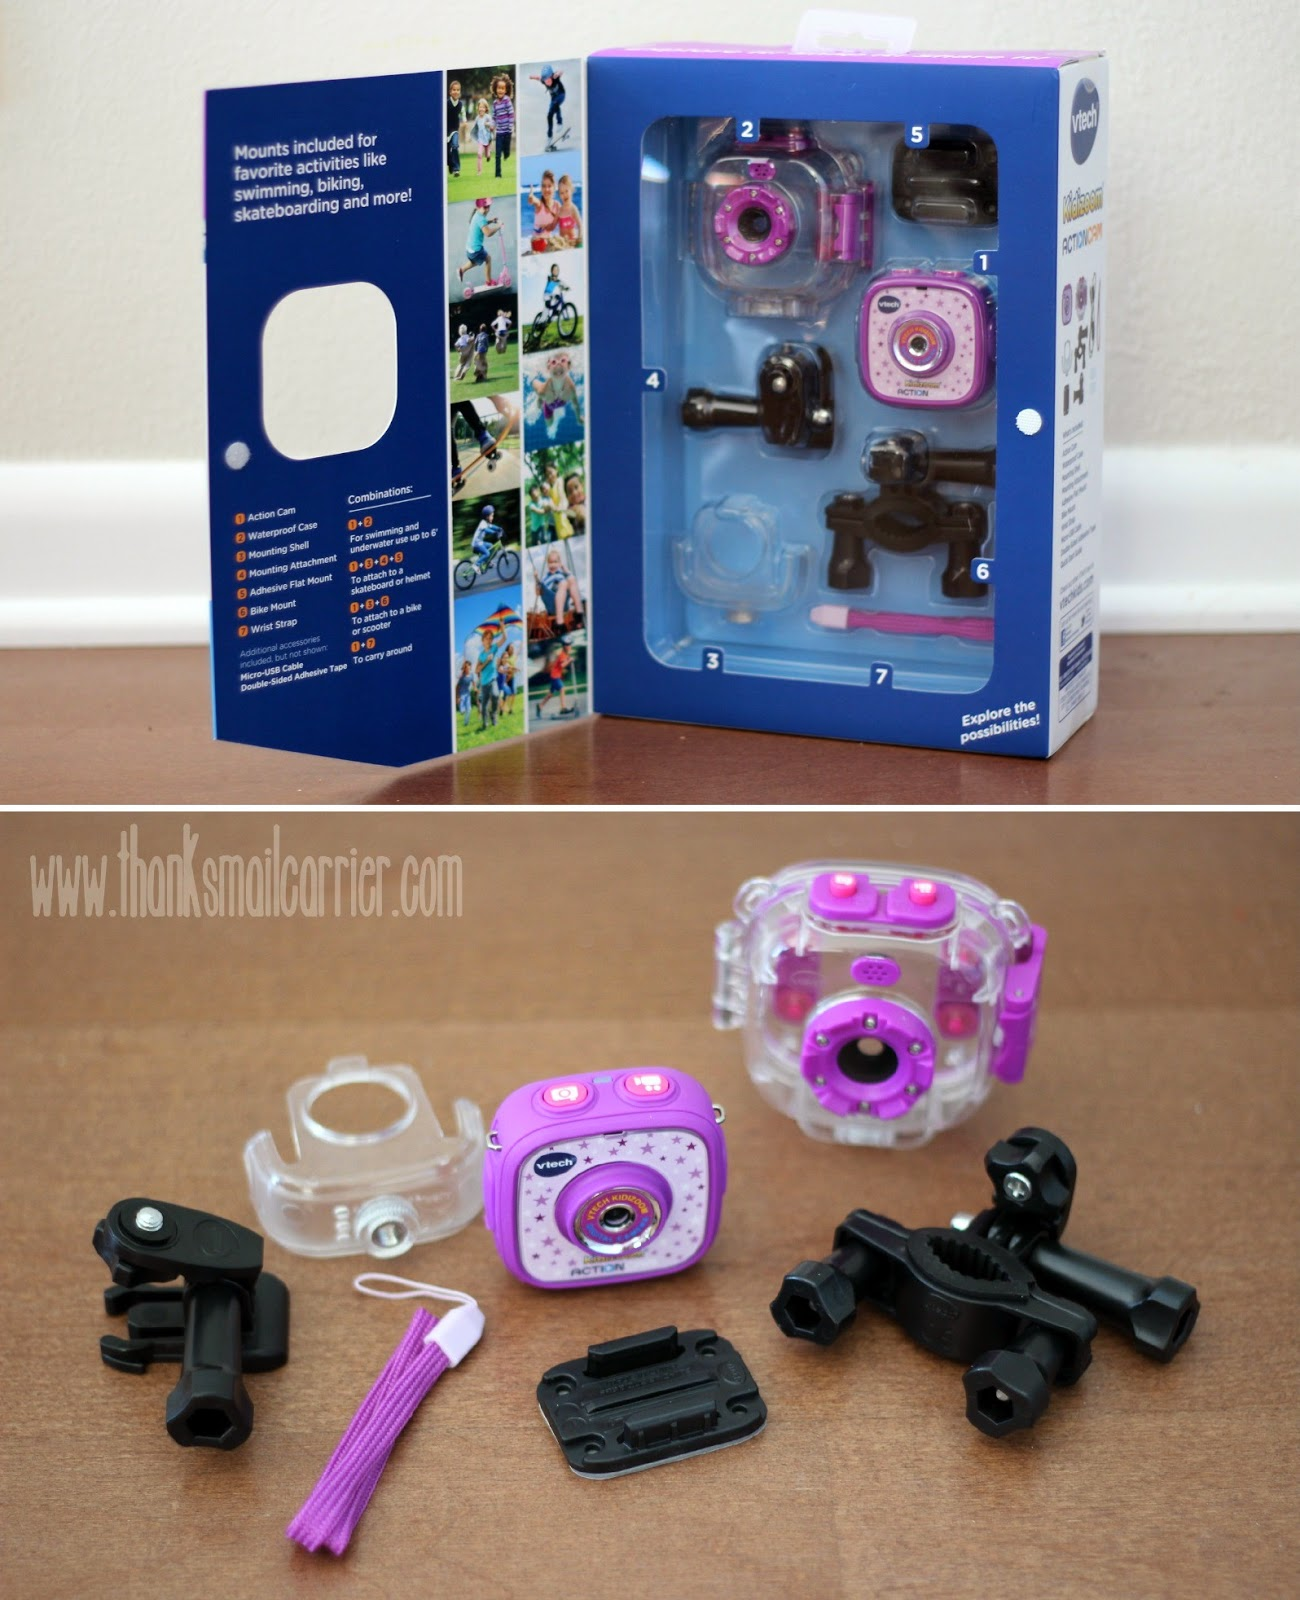 VTech Kidizoom Action Cam pieces